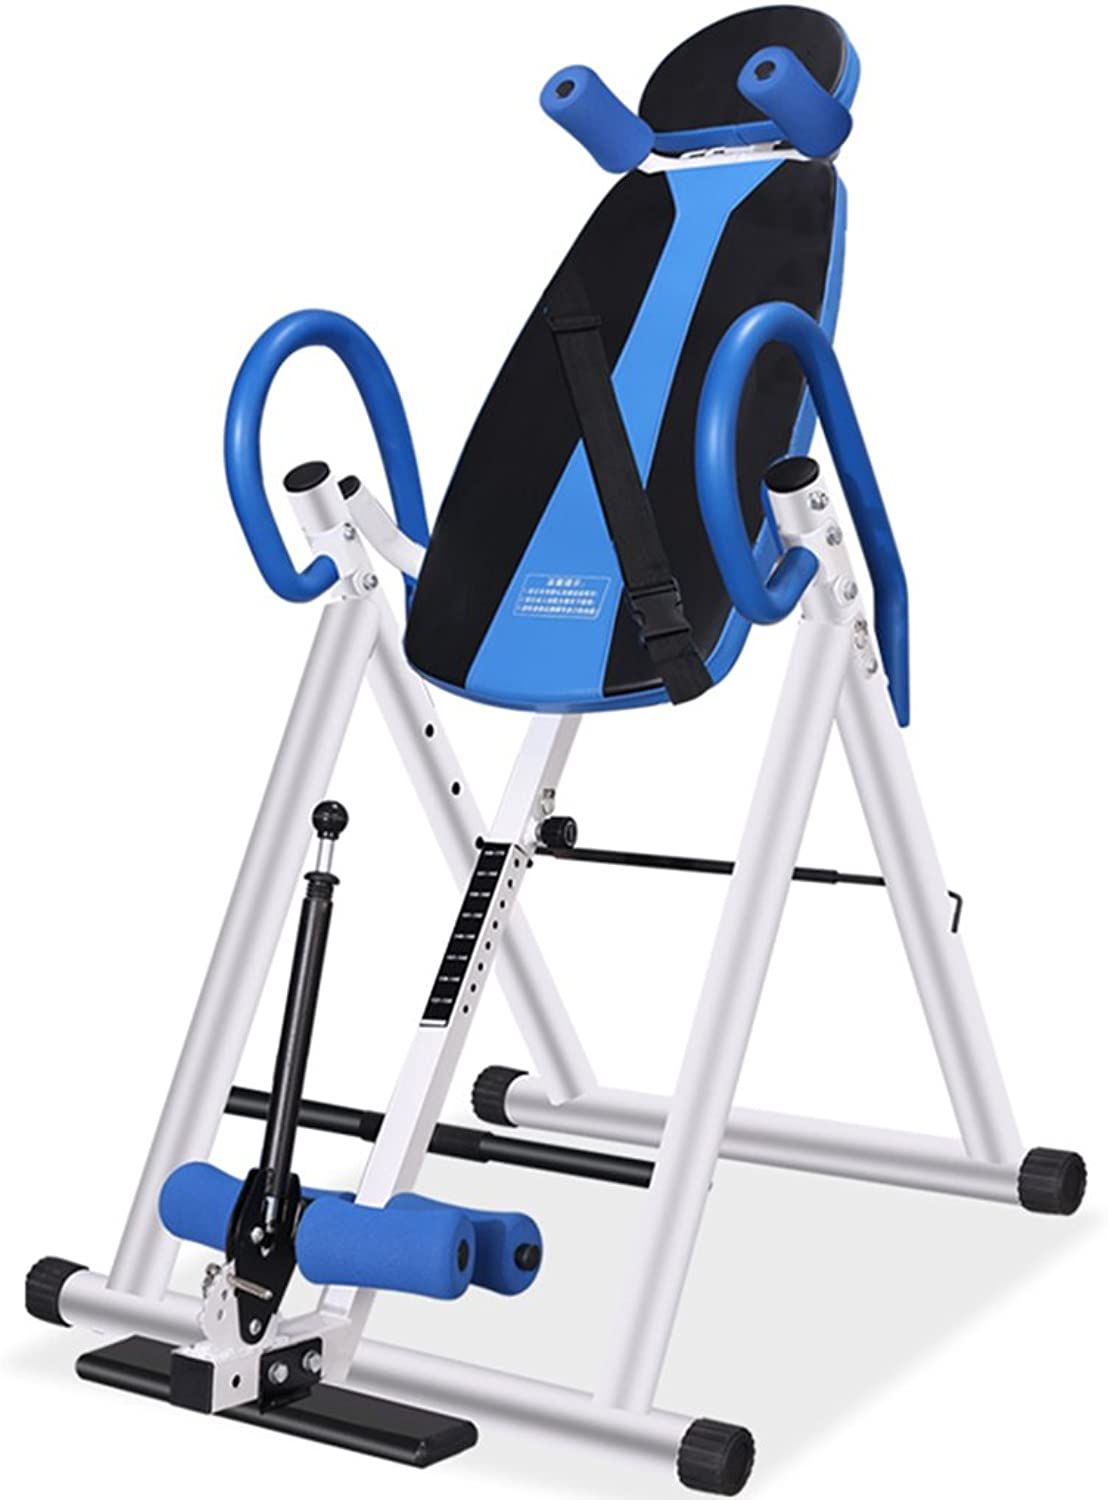 Inversion Table – Gravity Trainer with Perfect Balance System – Max User Weight 150 Kg – Improves Back Pain and Posture,blueee